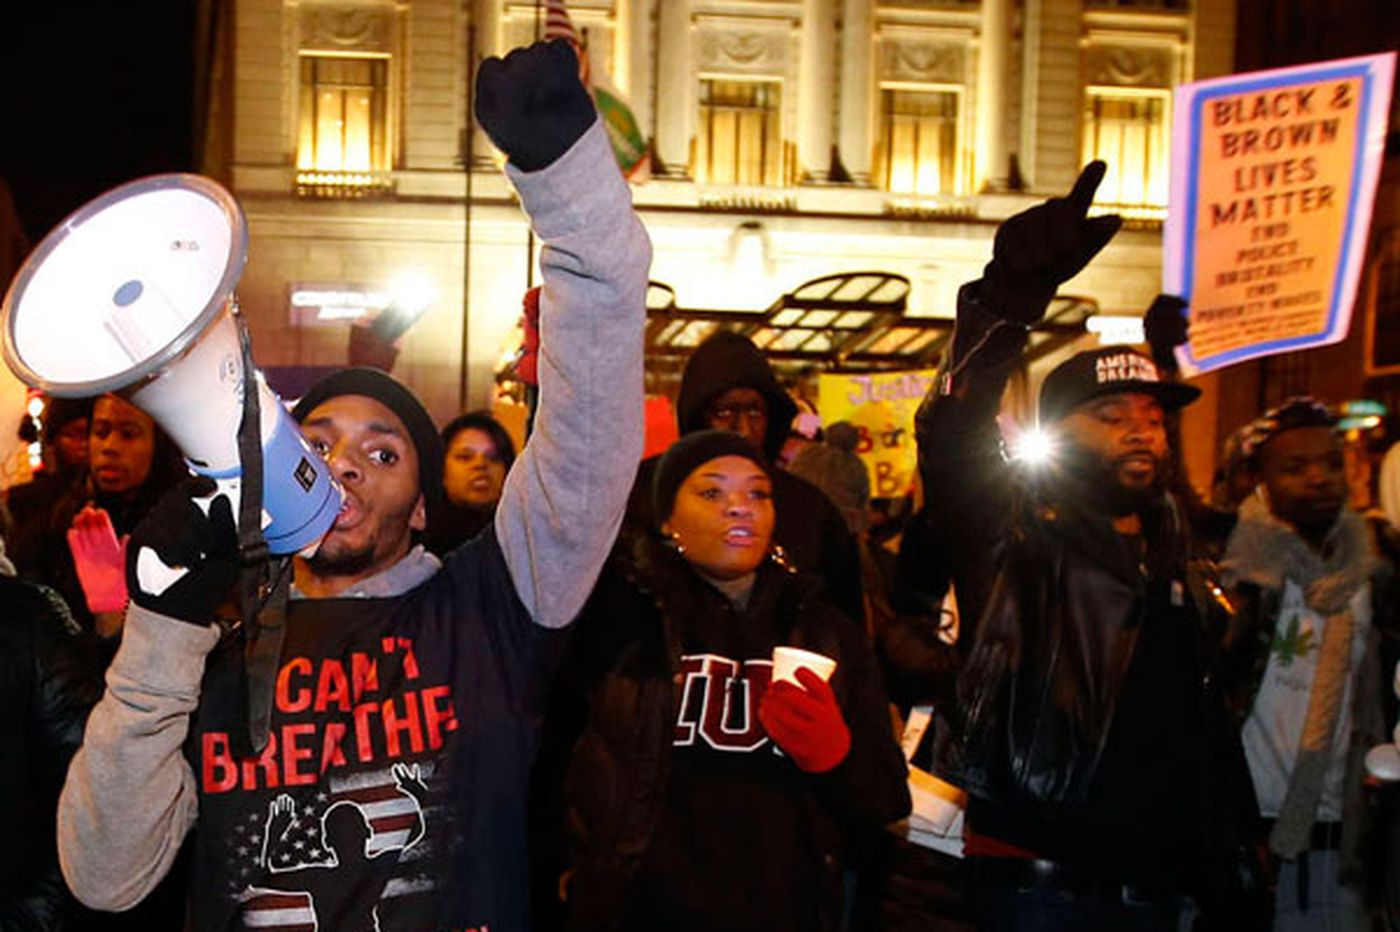 BlackOut Philly protests against police brutality